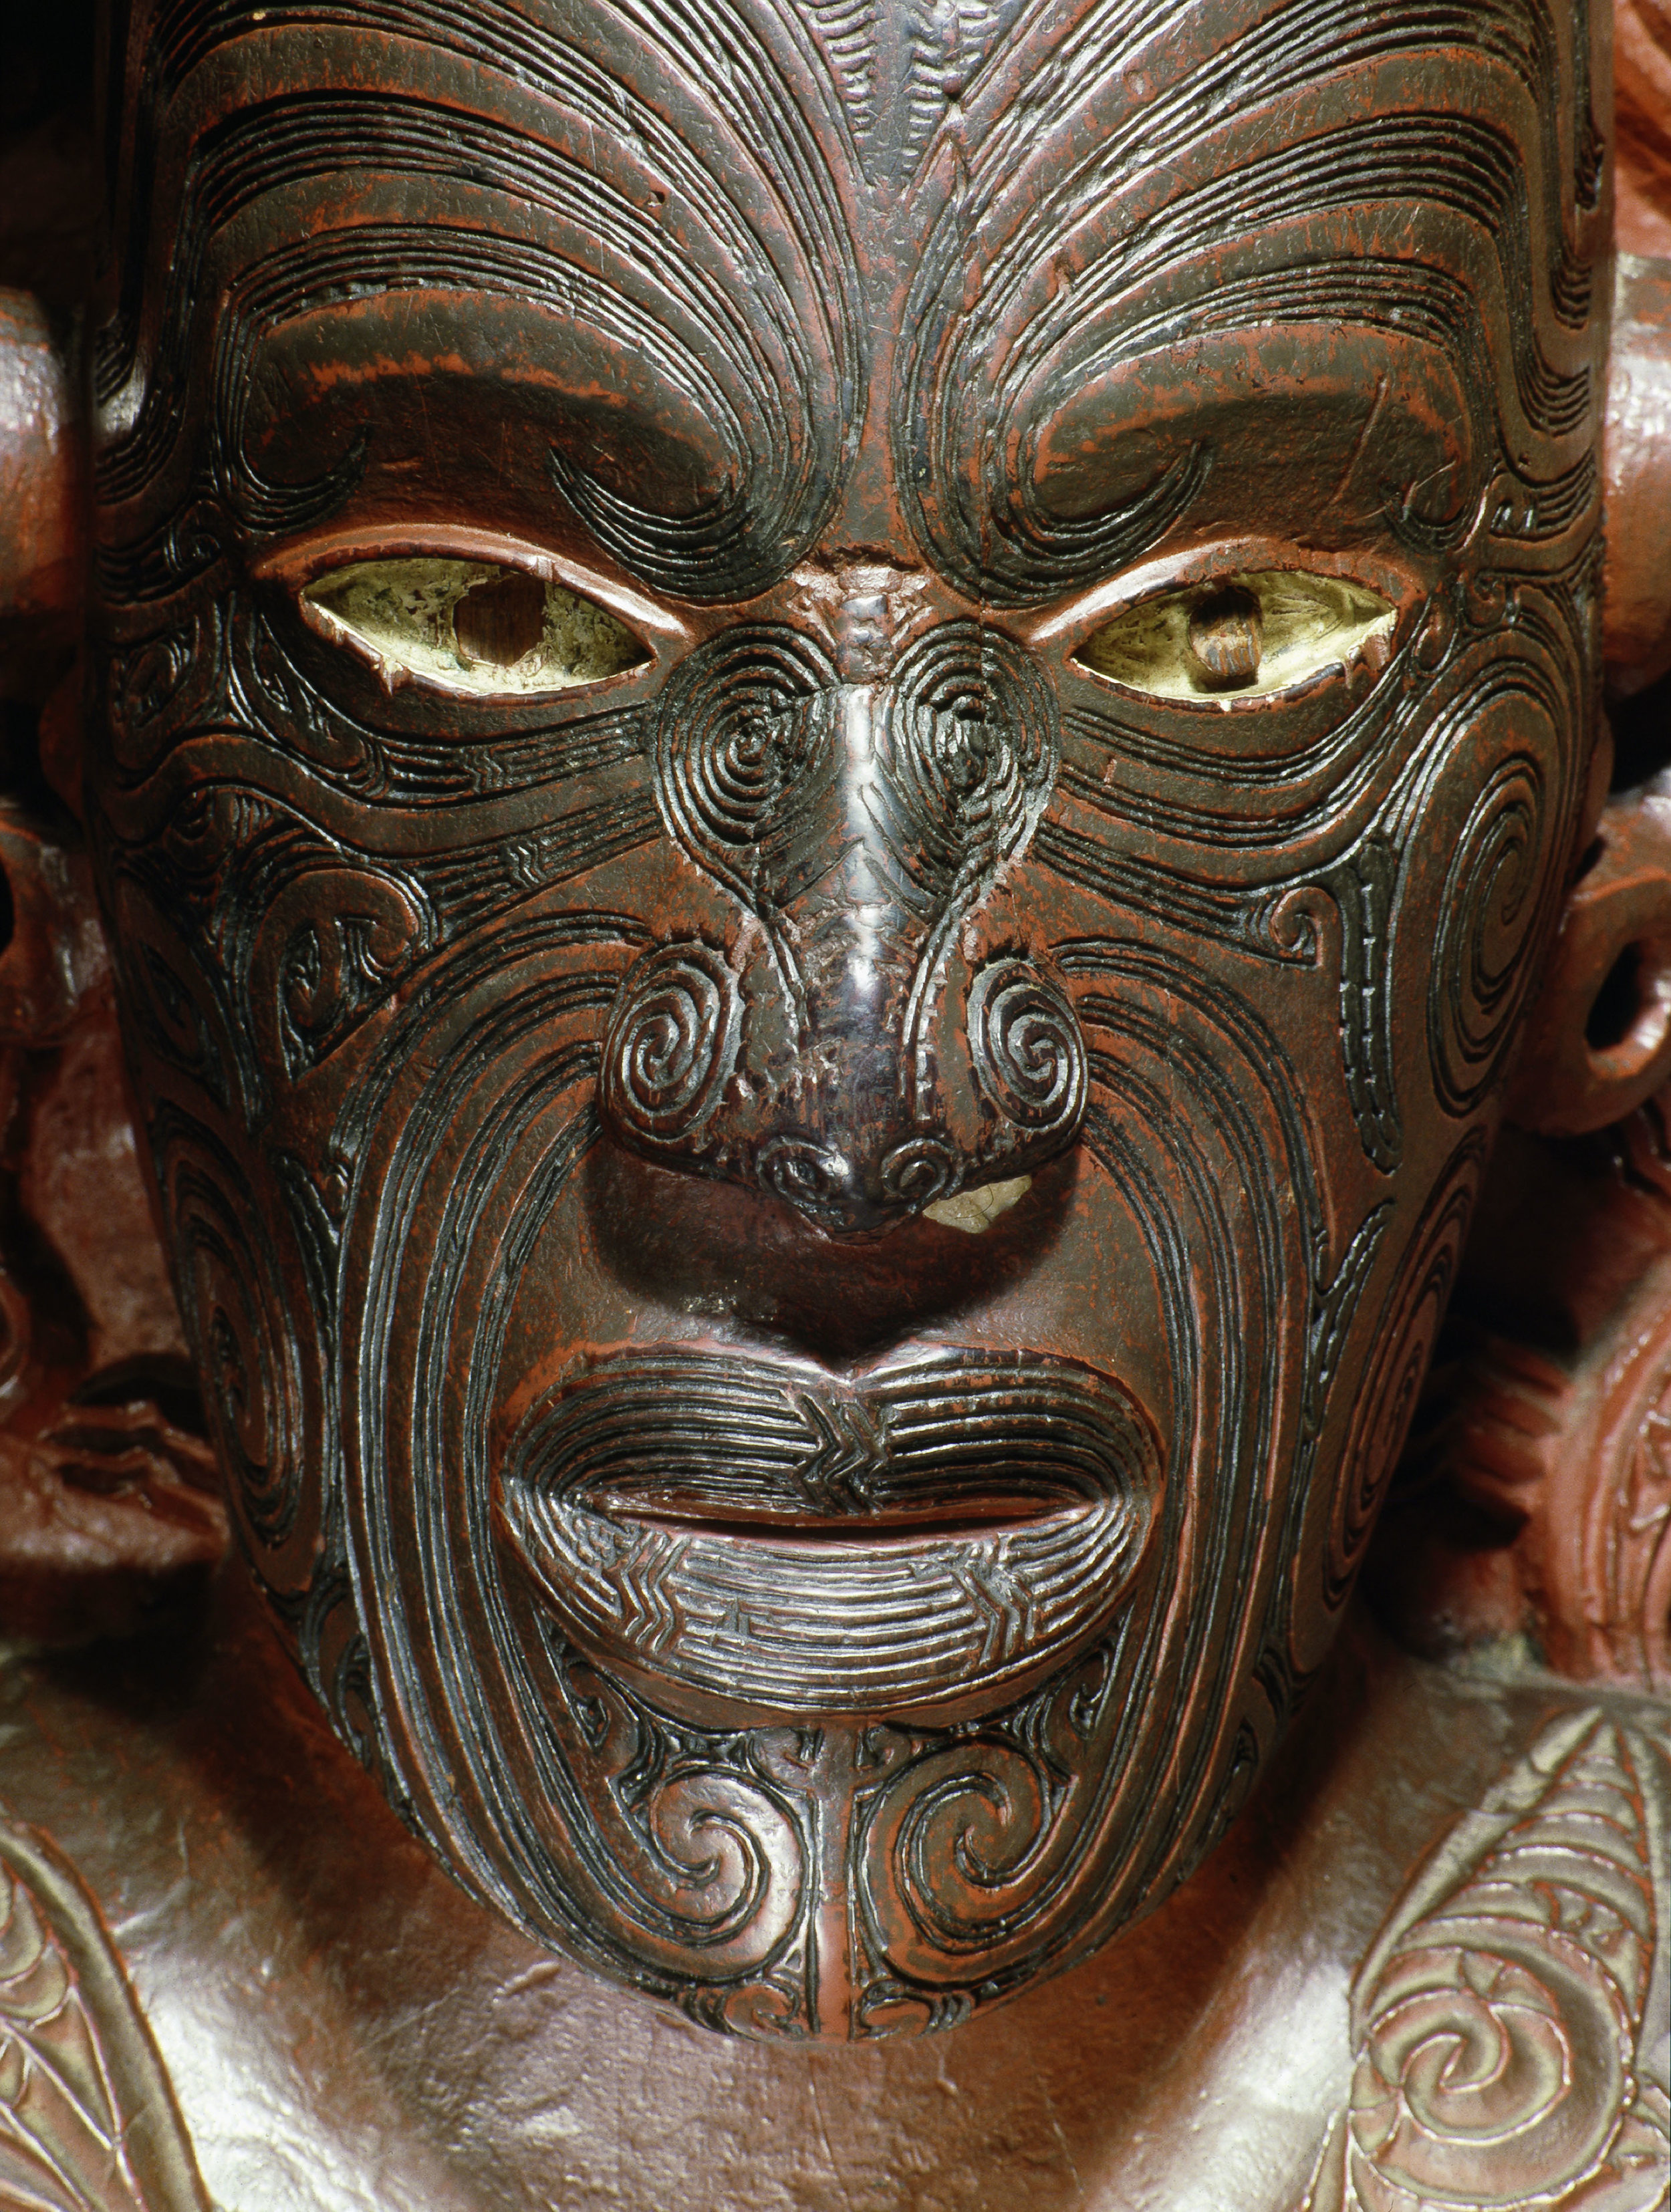 Te Hau-Ki-Turanga meeting house, built by the Ngati Kaipoho tribe in 1842. This detail is the portrait figure of Raharuhi Rukupo, the chief responsible for organizing and directing the carving of this famous meeting house. The unique arrangement of each moko or tattoo allowed the subjects of a portrait sculpture to be identified. Manutuke. | Inv. #: 55404955 © Werner Forman Archive/ National Museum of New Zealand, Wellington